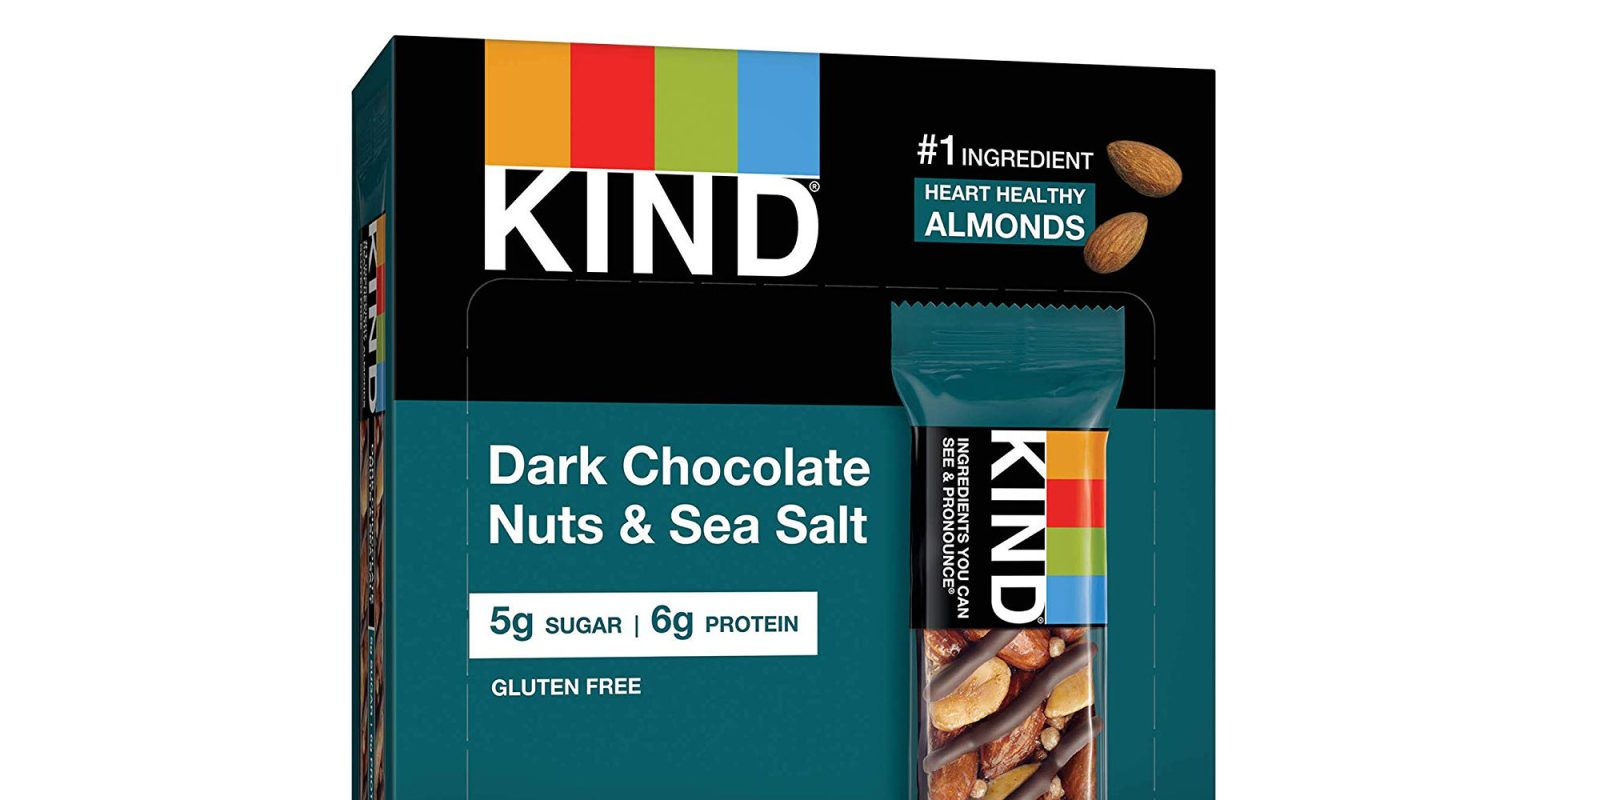 Amazon 1-day protein bar/snack sale from $8: KIND, RXBAR, Kashi, and more